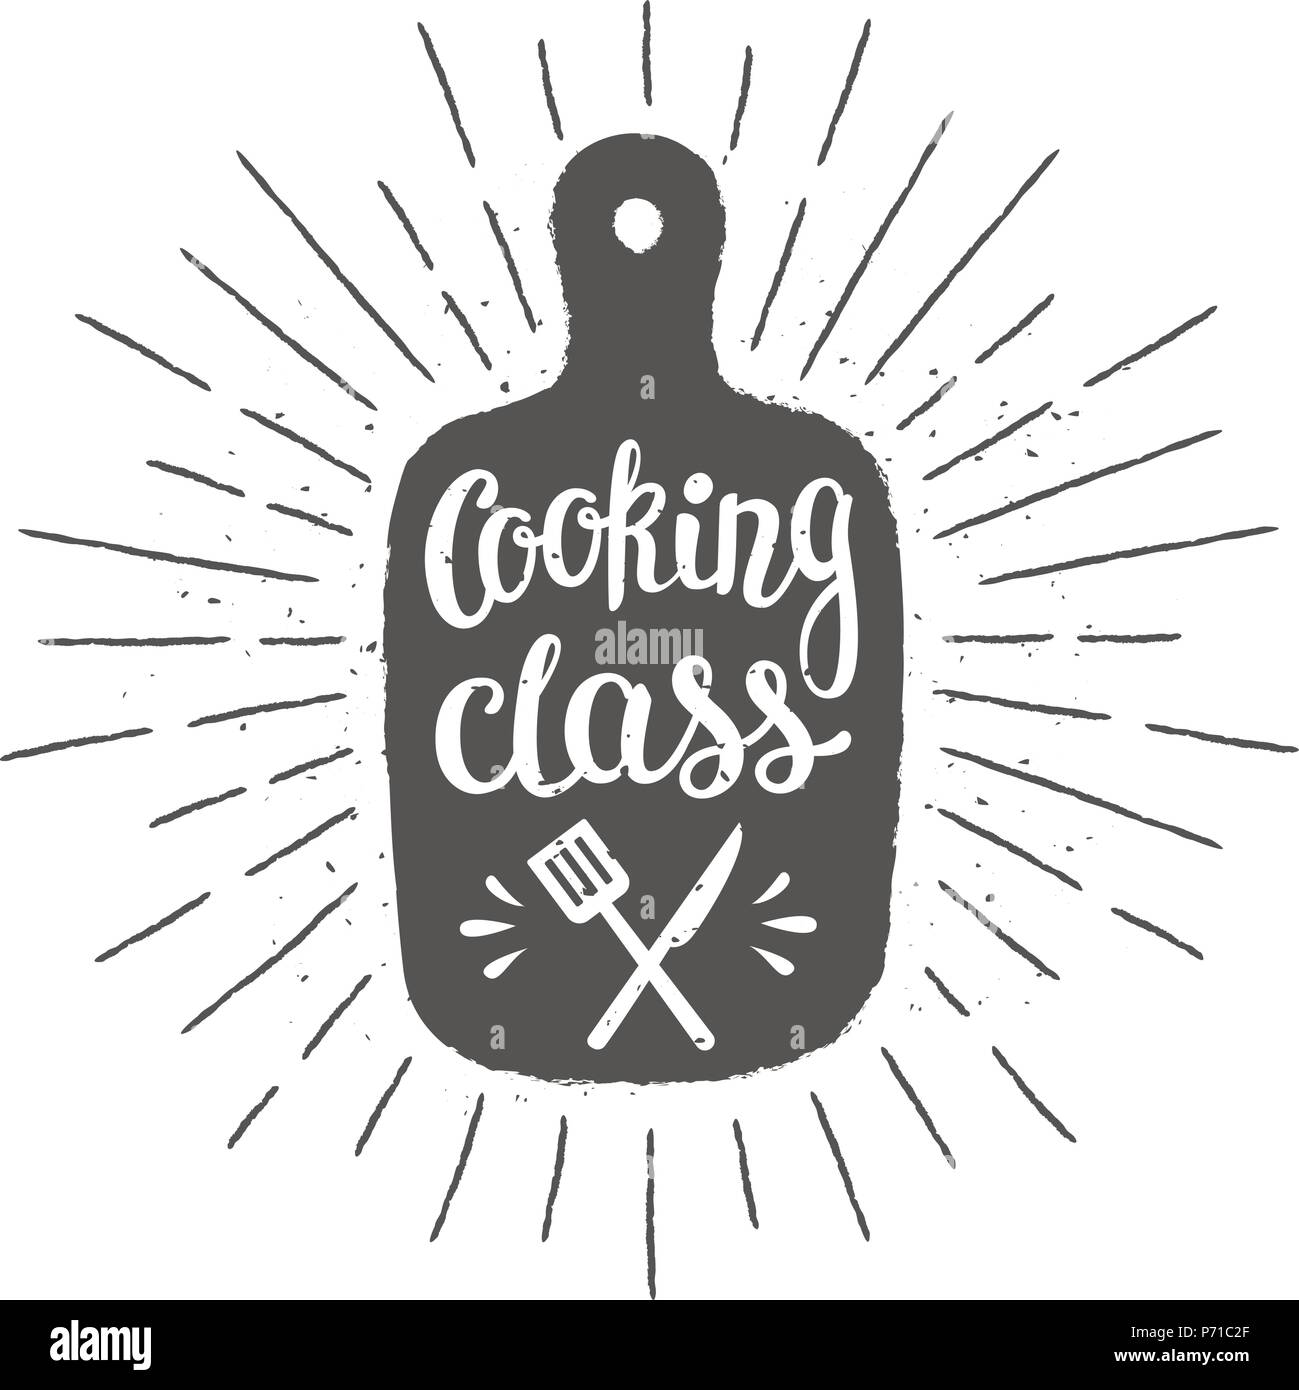 Cutting board silhoutte with lettering - Cooking class - and vintage sun rays. Good for cooking logotypes, bades or posters. - Stock Image